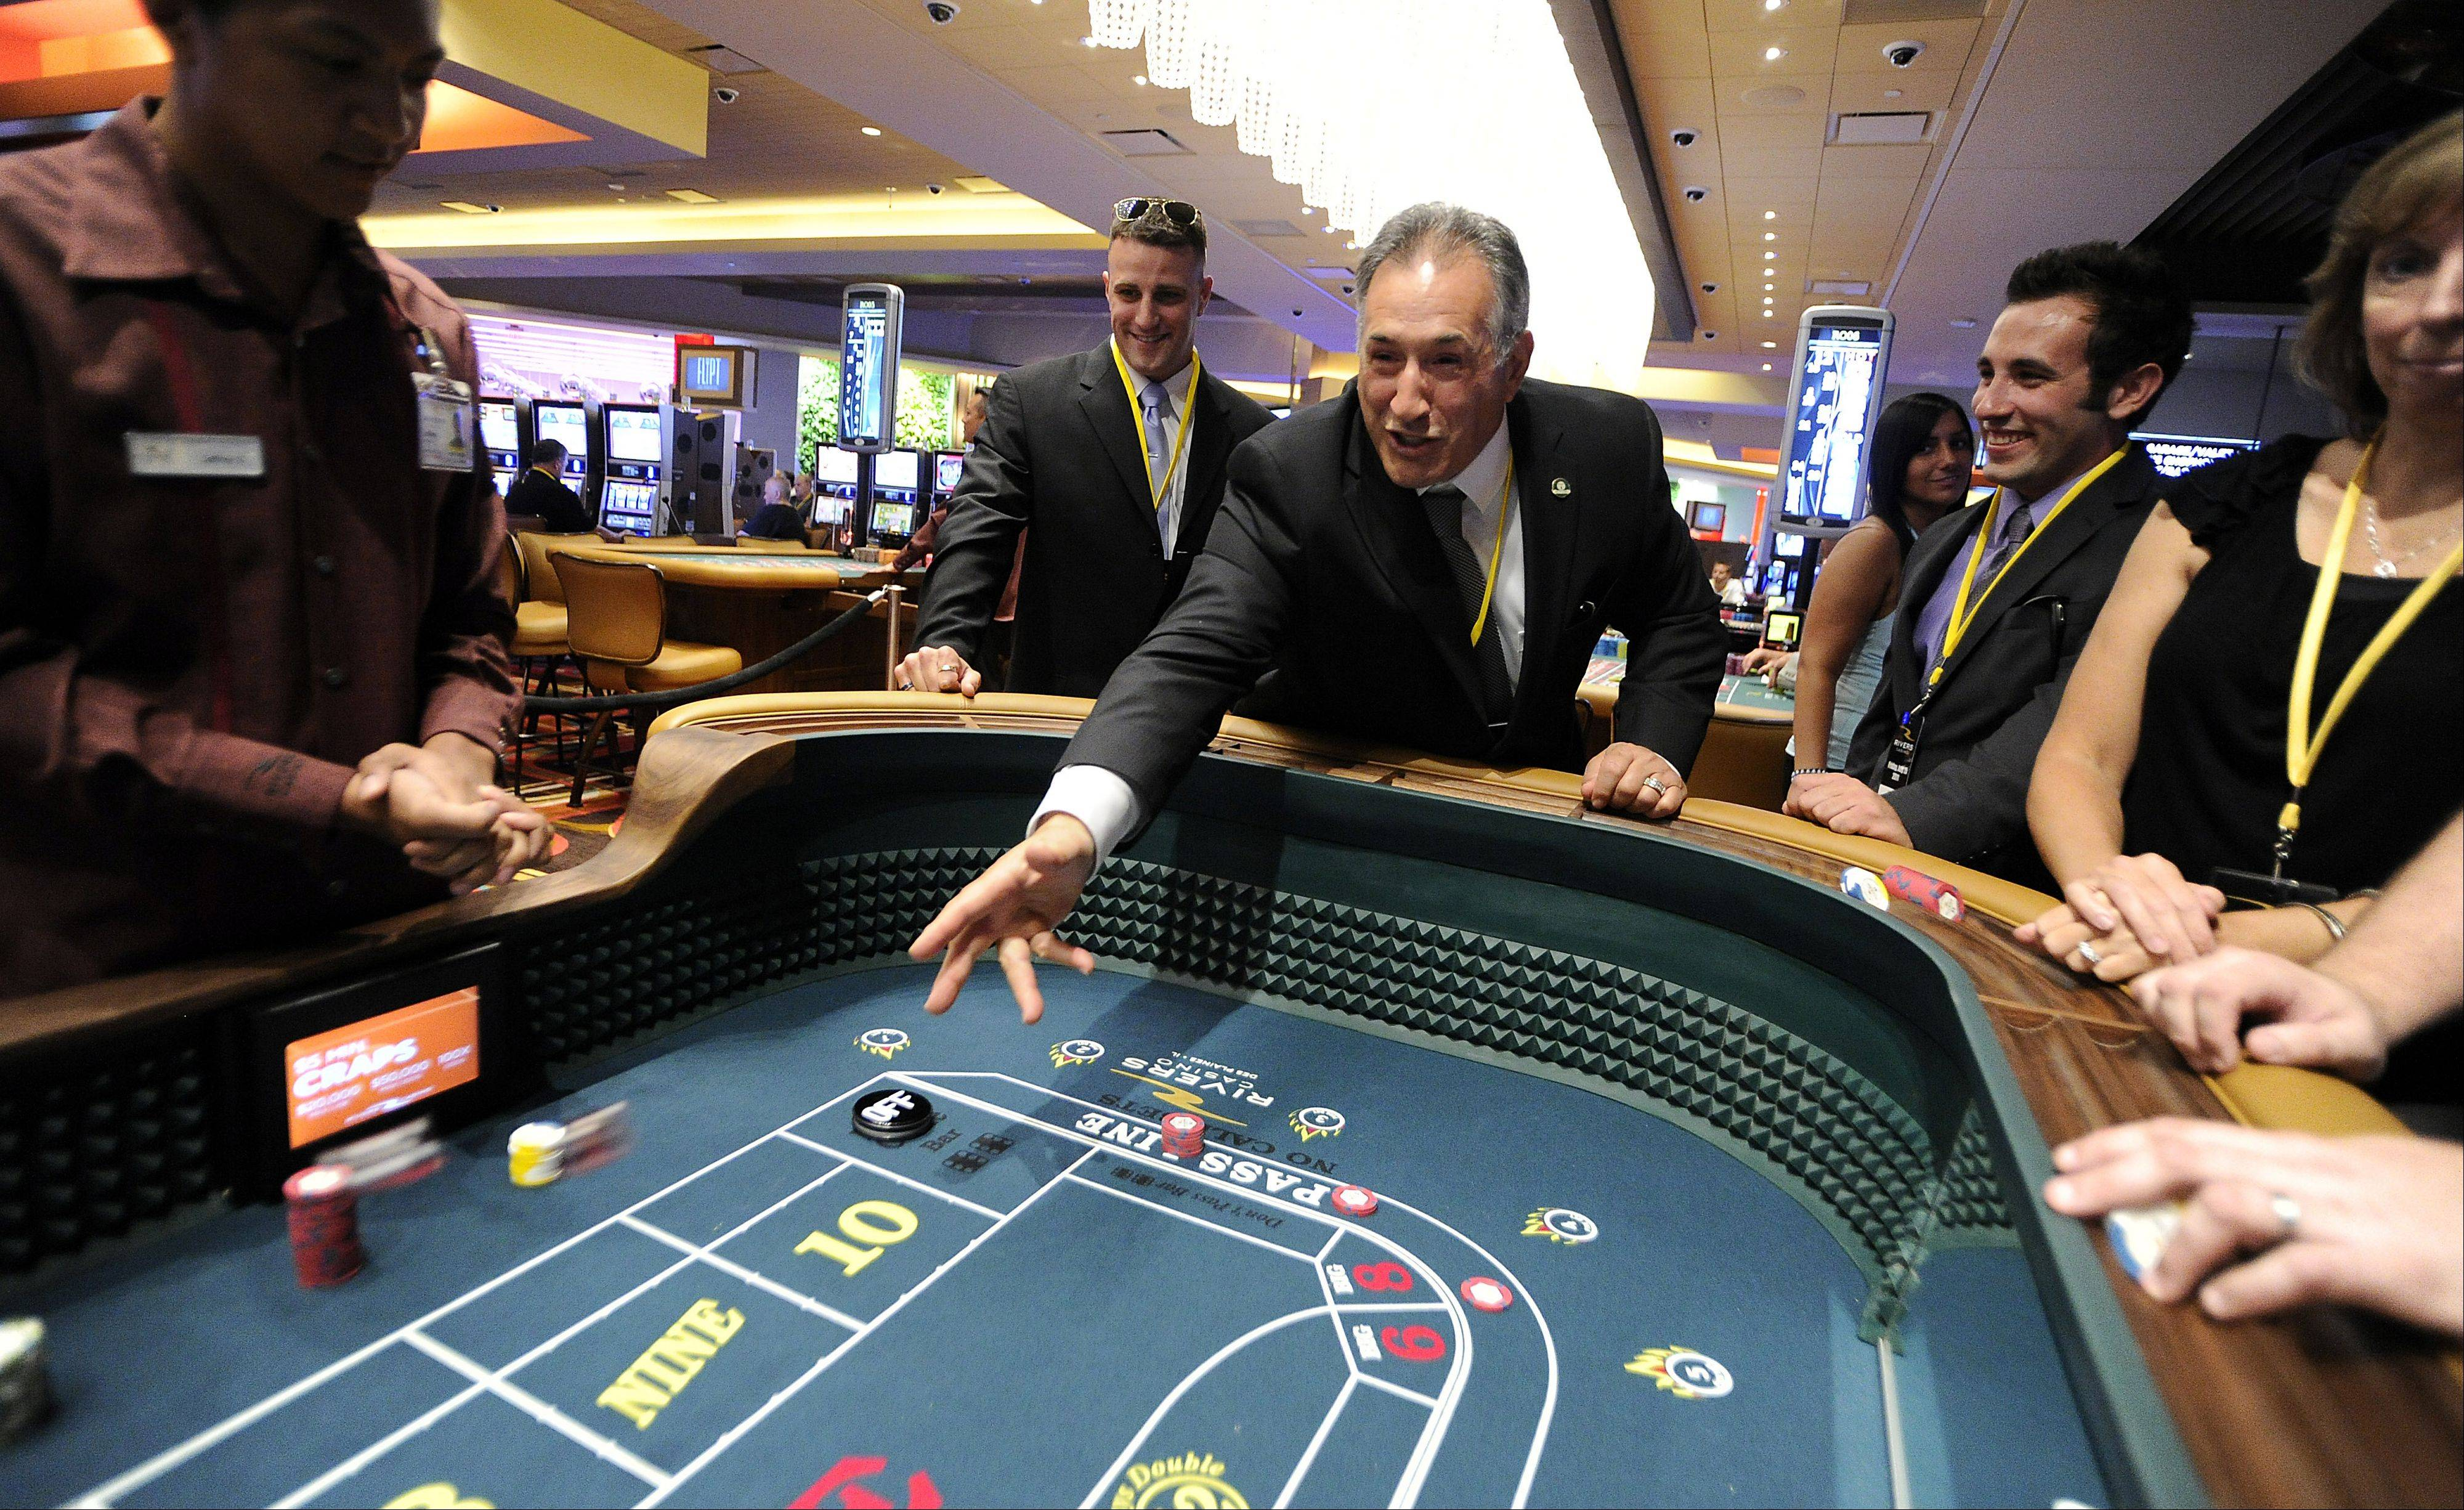 The Rivers Casino in Des Plaines will open Monday, but the long path to this point started in East Dubuque in 1997.